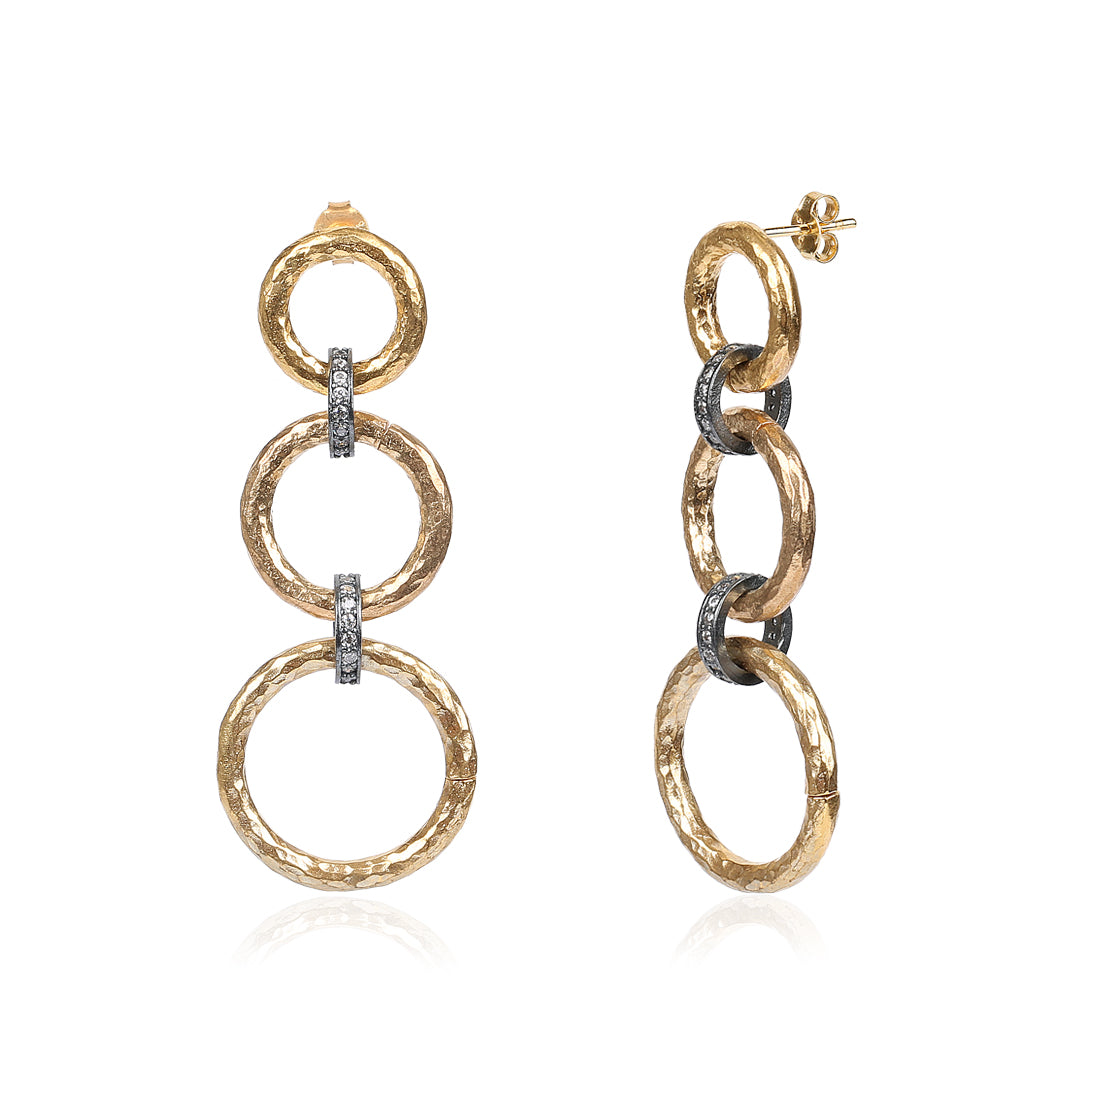 Two Tone Chainlink Earring